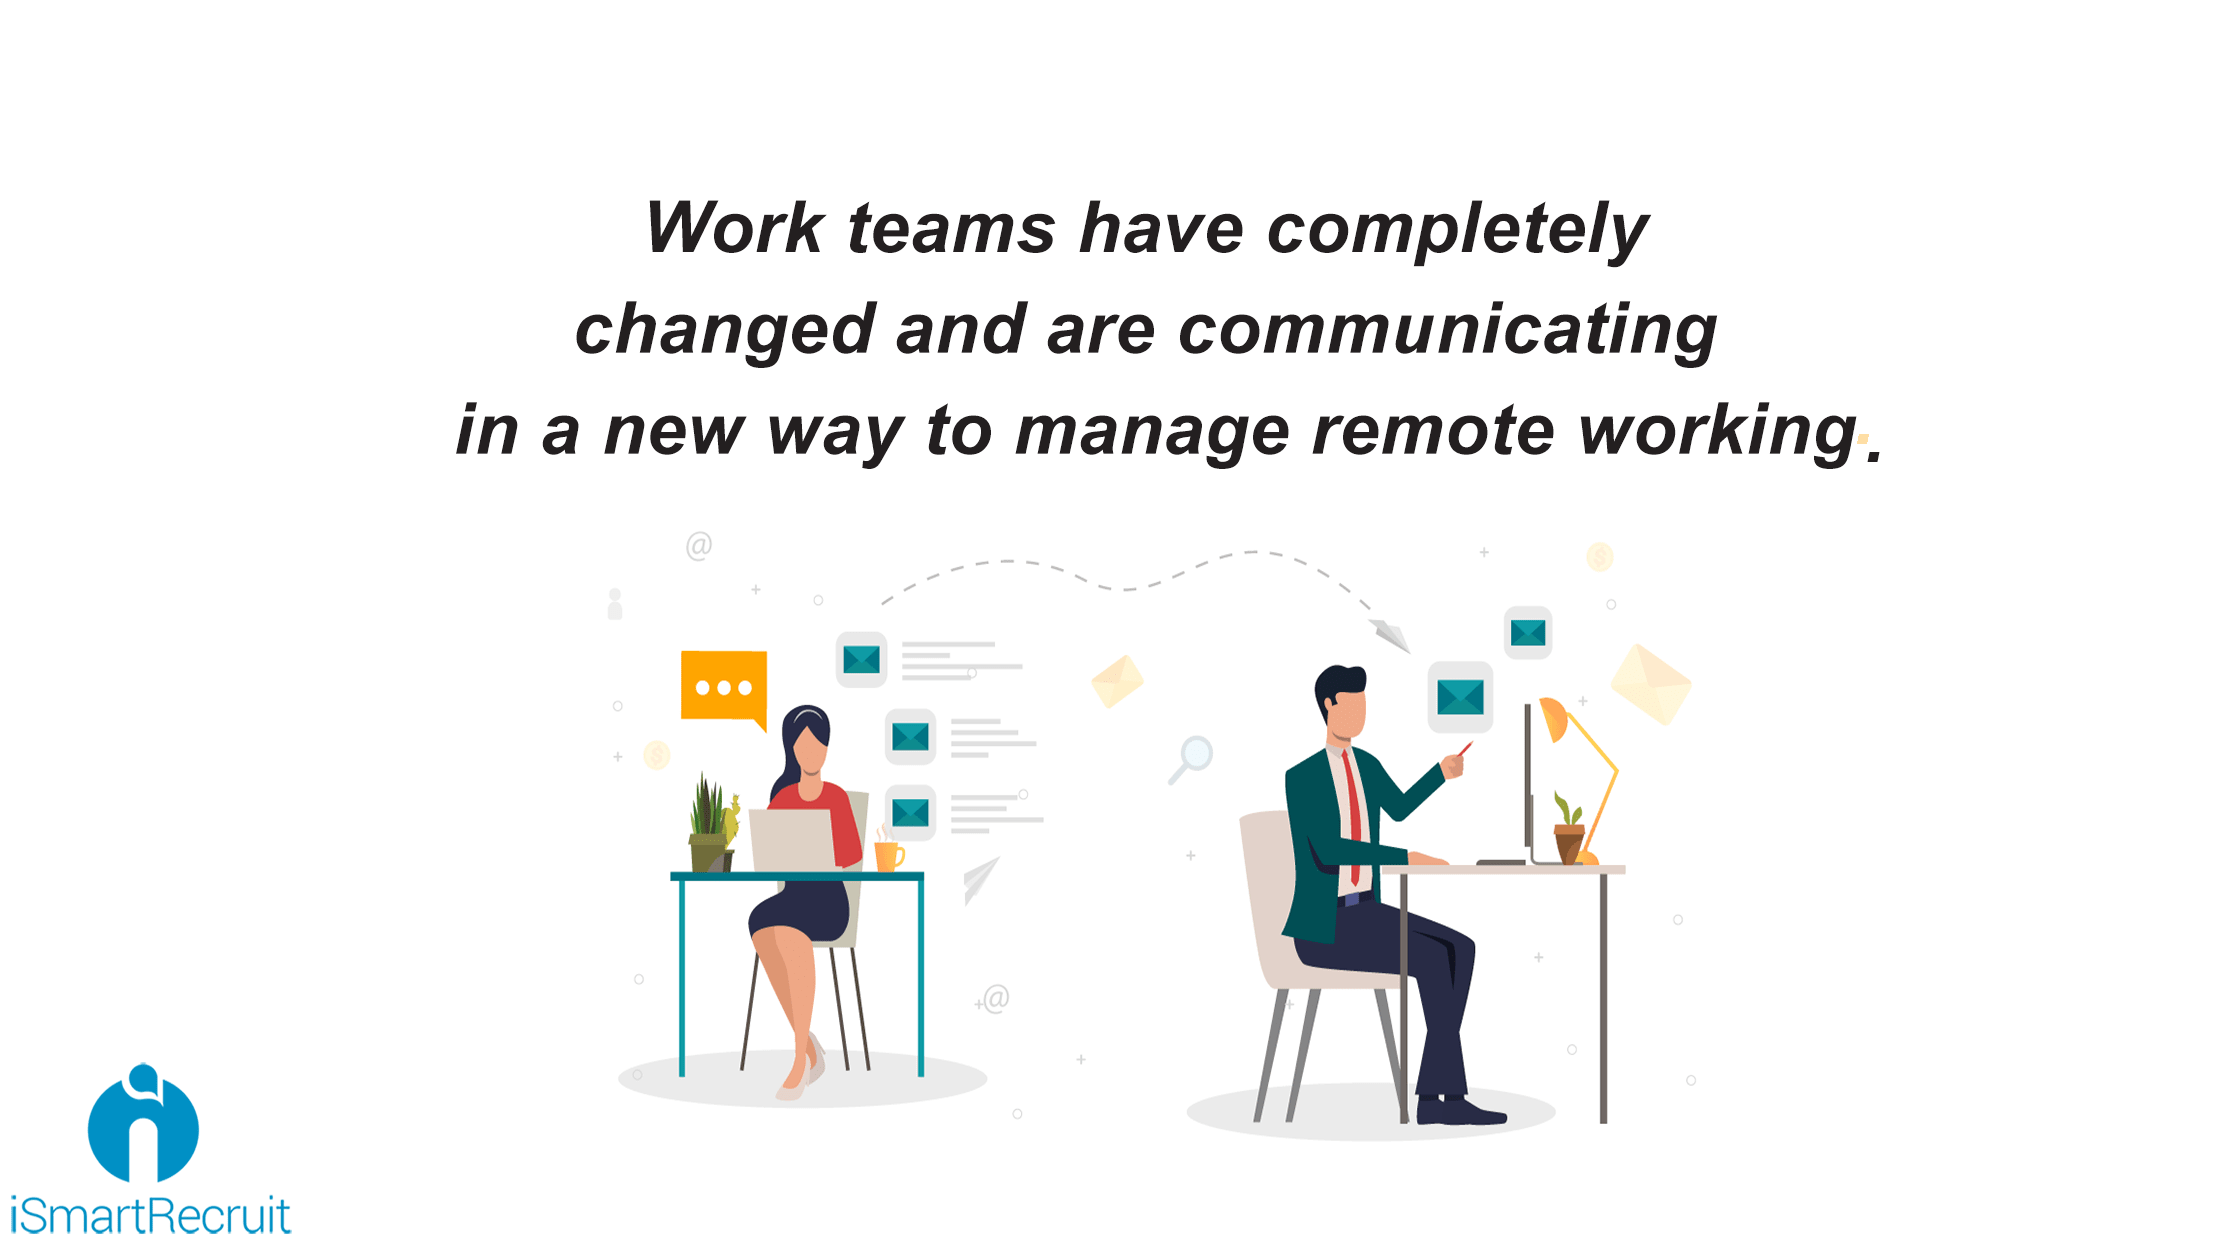 Work teams have completely changed